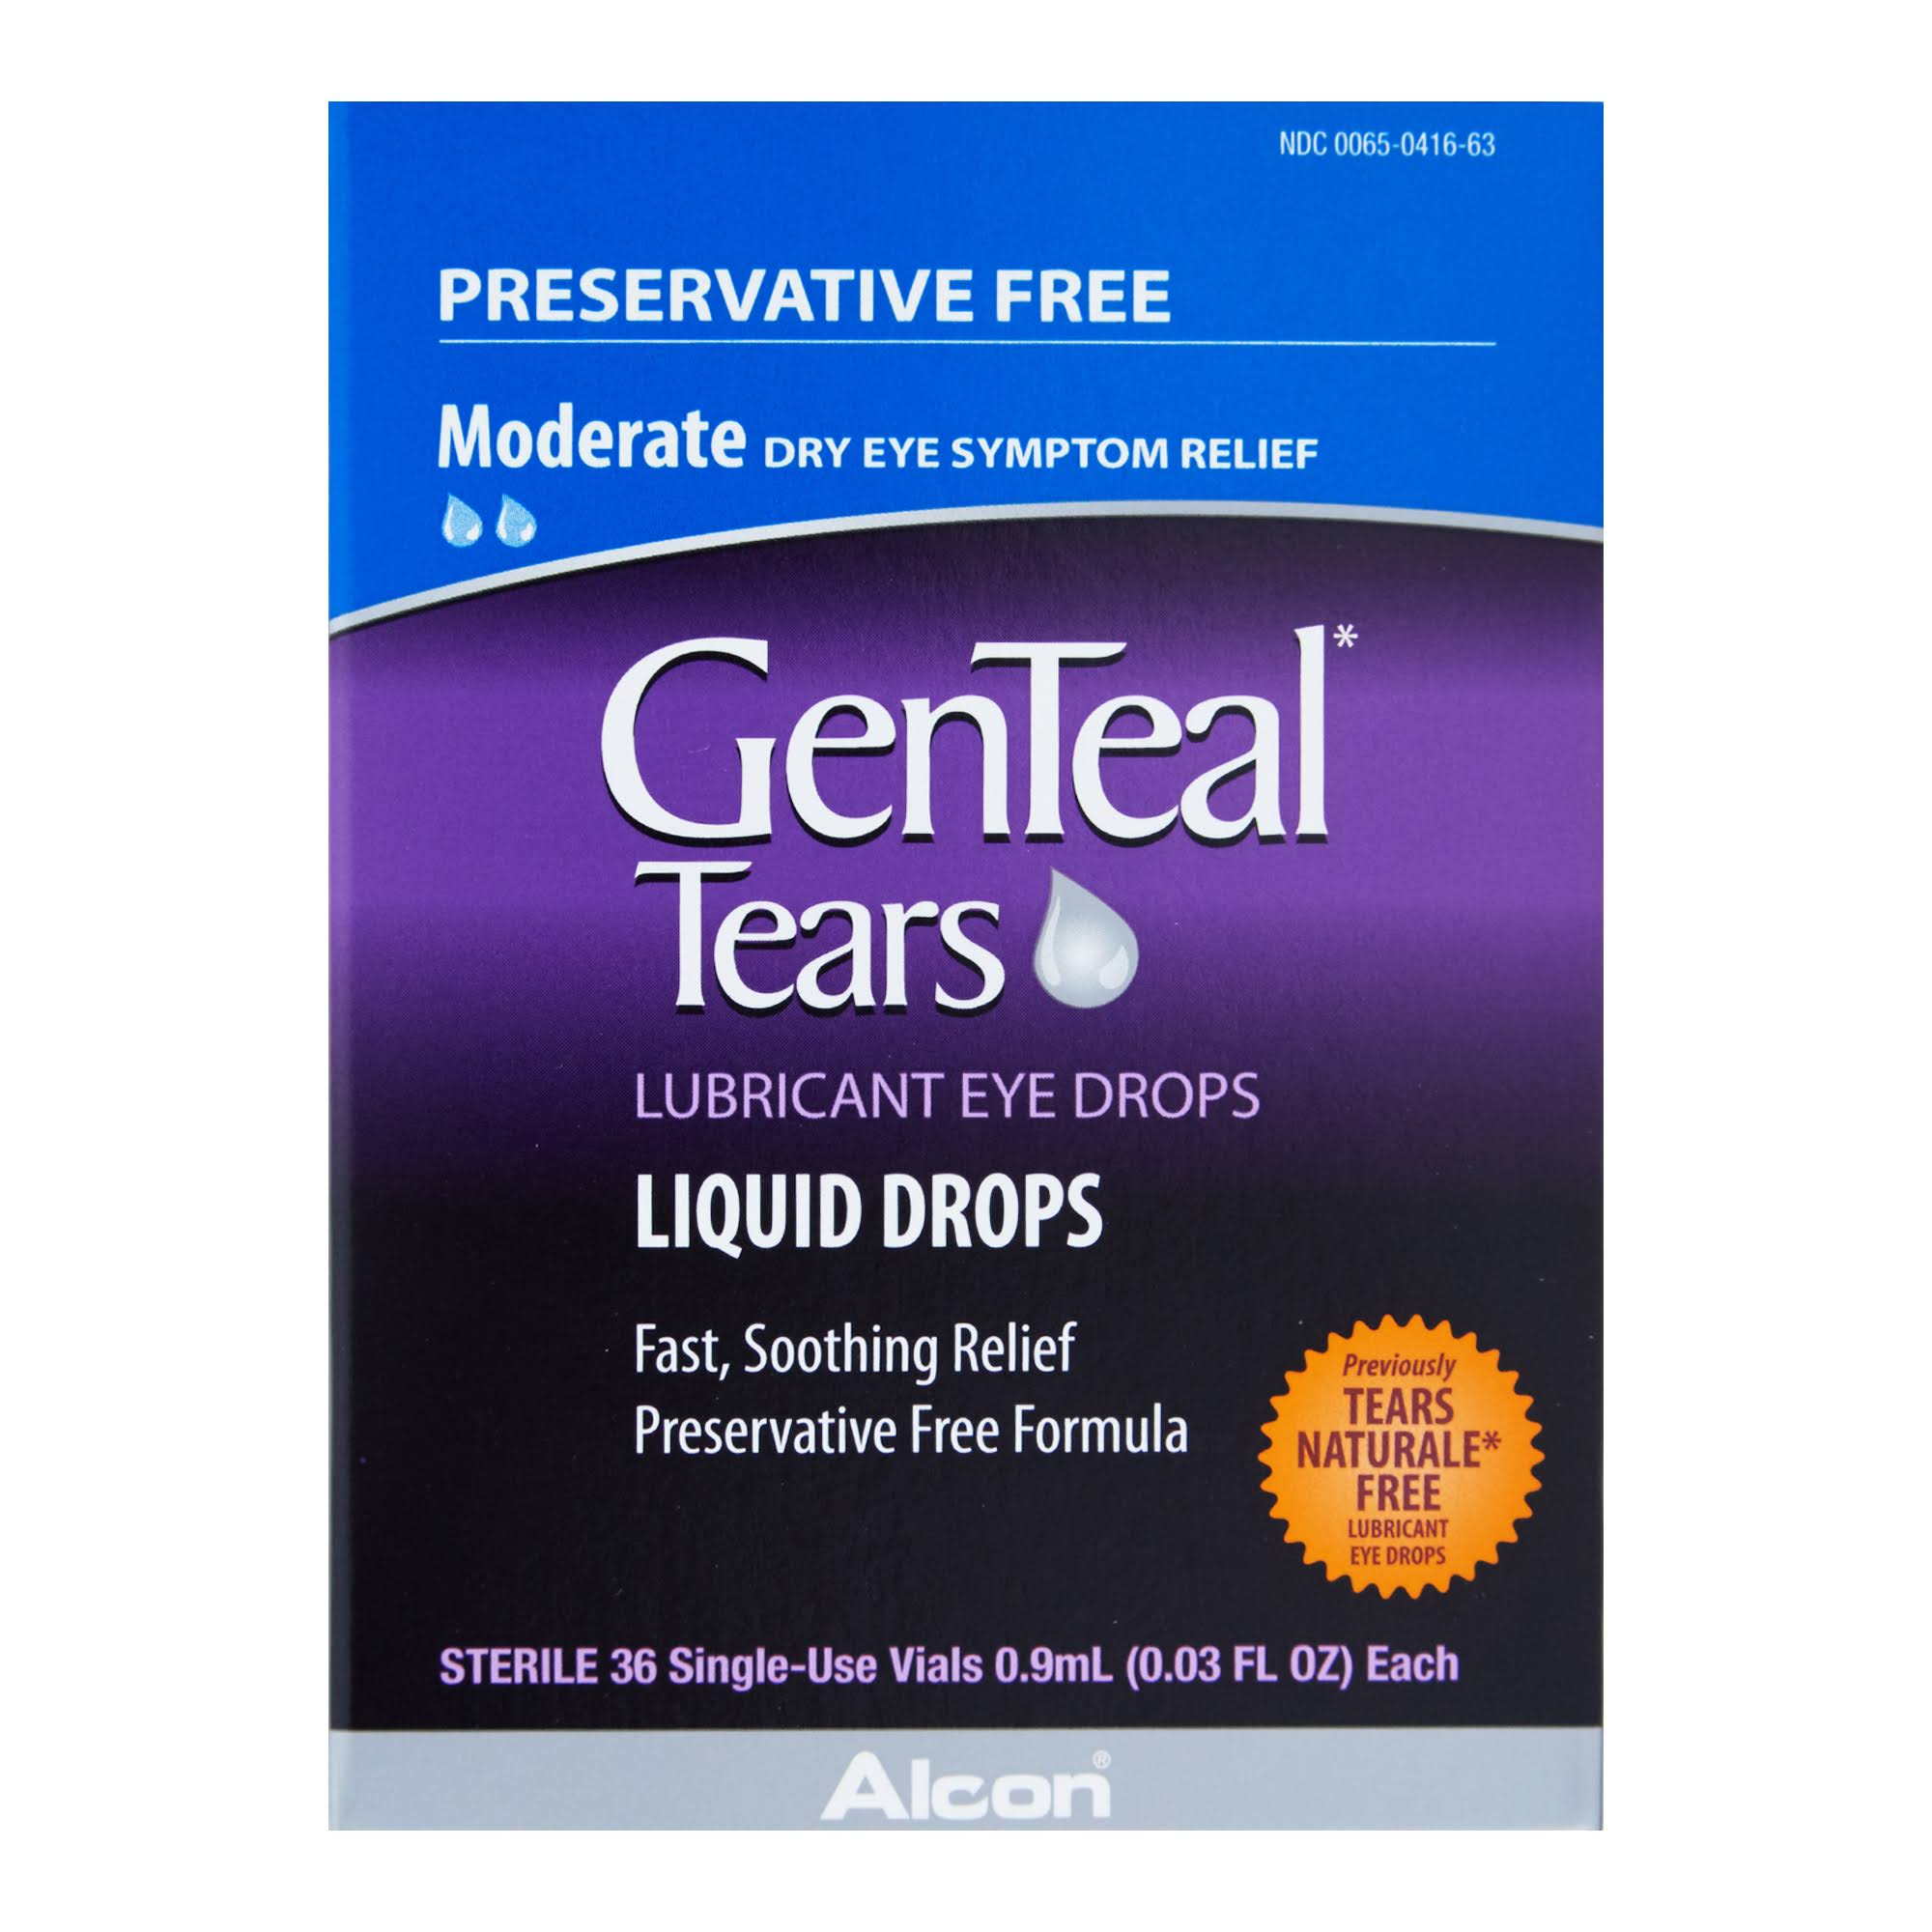 GenTeal Tears Lubricant Eye Drops Single Use, 36 Vials